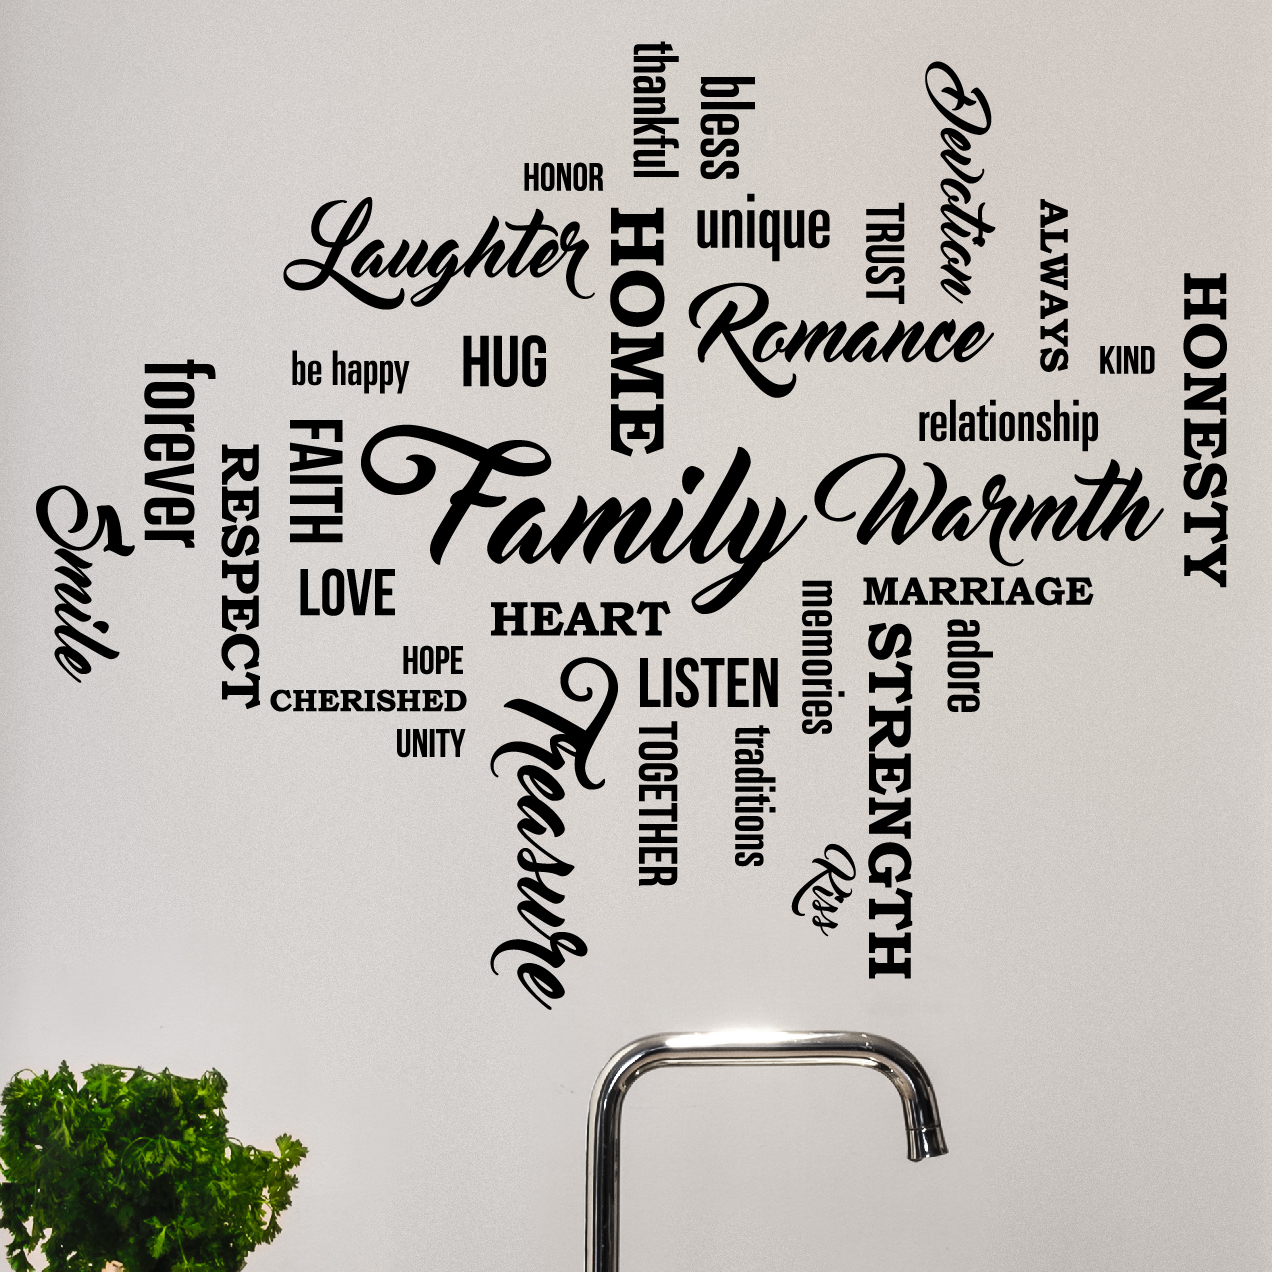 1477-family-word-decal-set.jpg